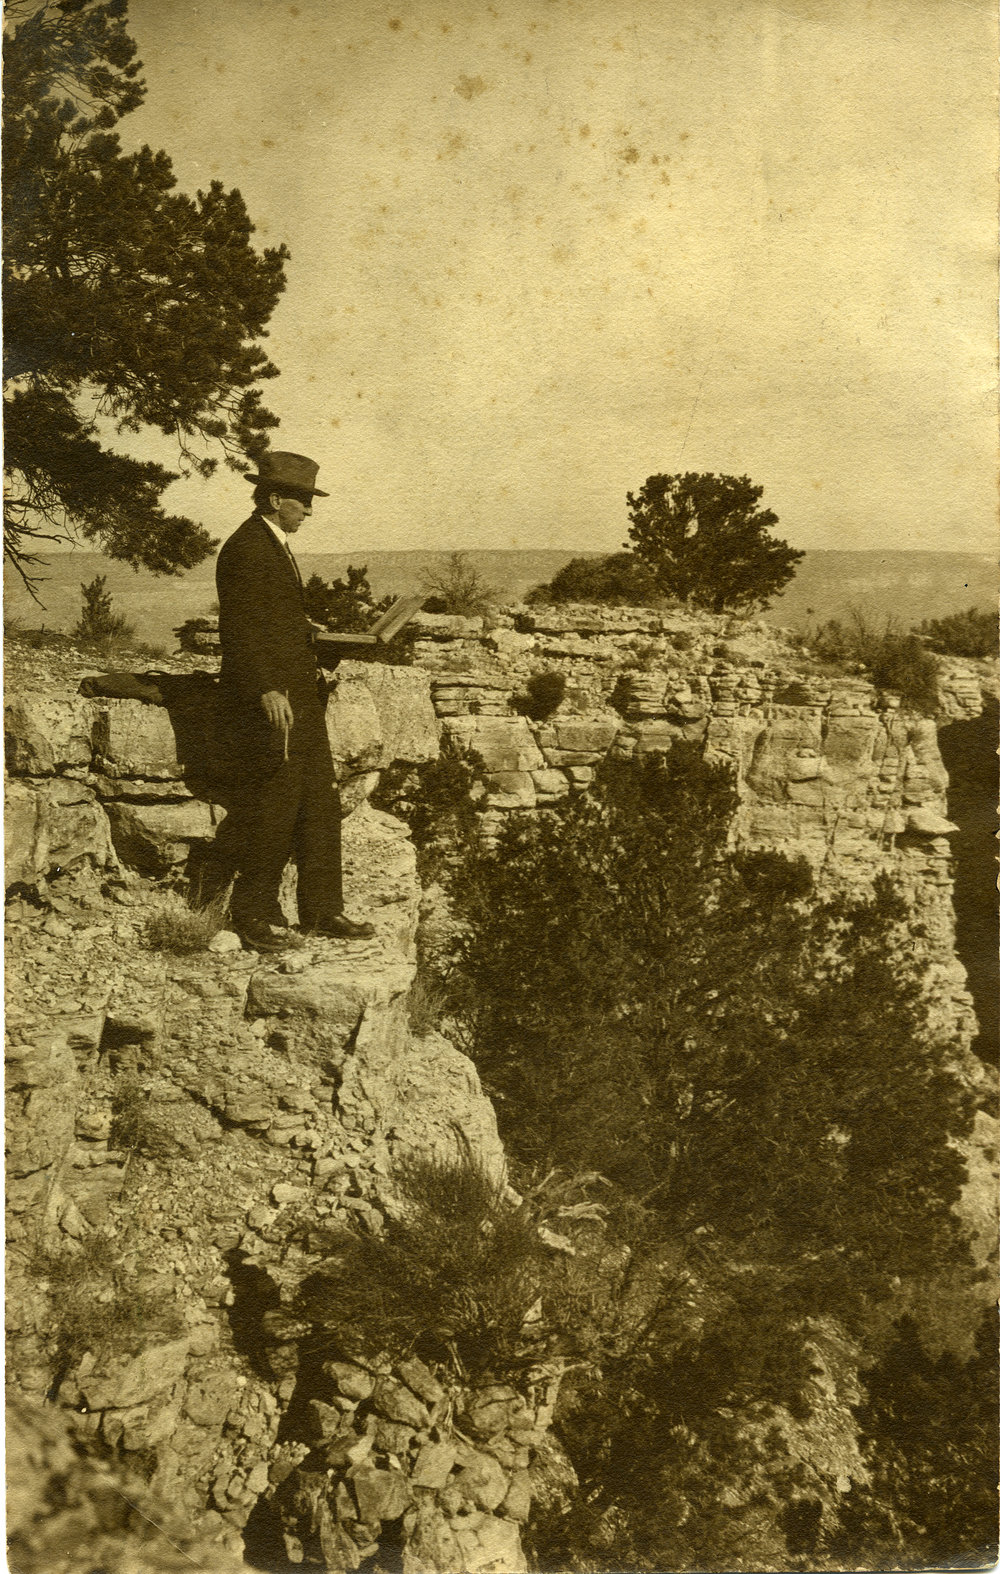 Elliott Daingerfield working at the rim of the Grand Canyon.